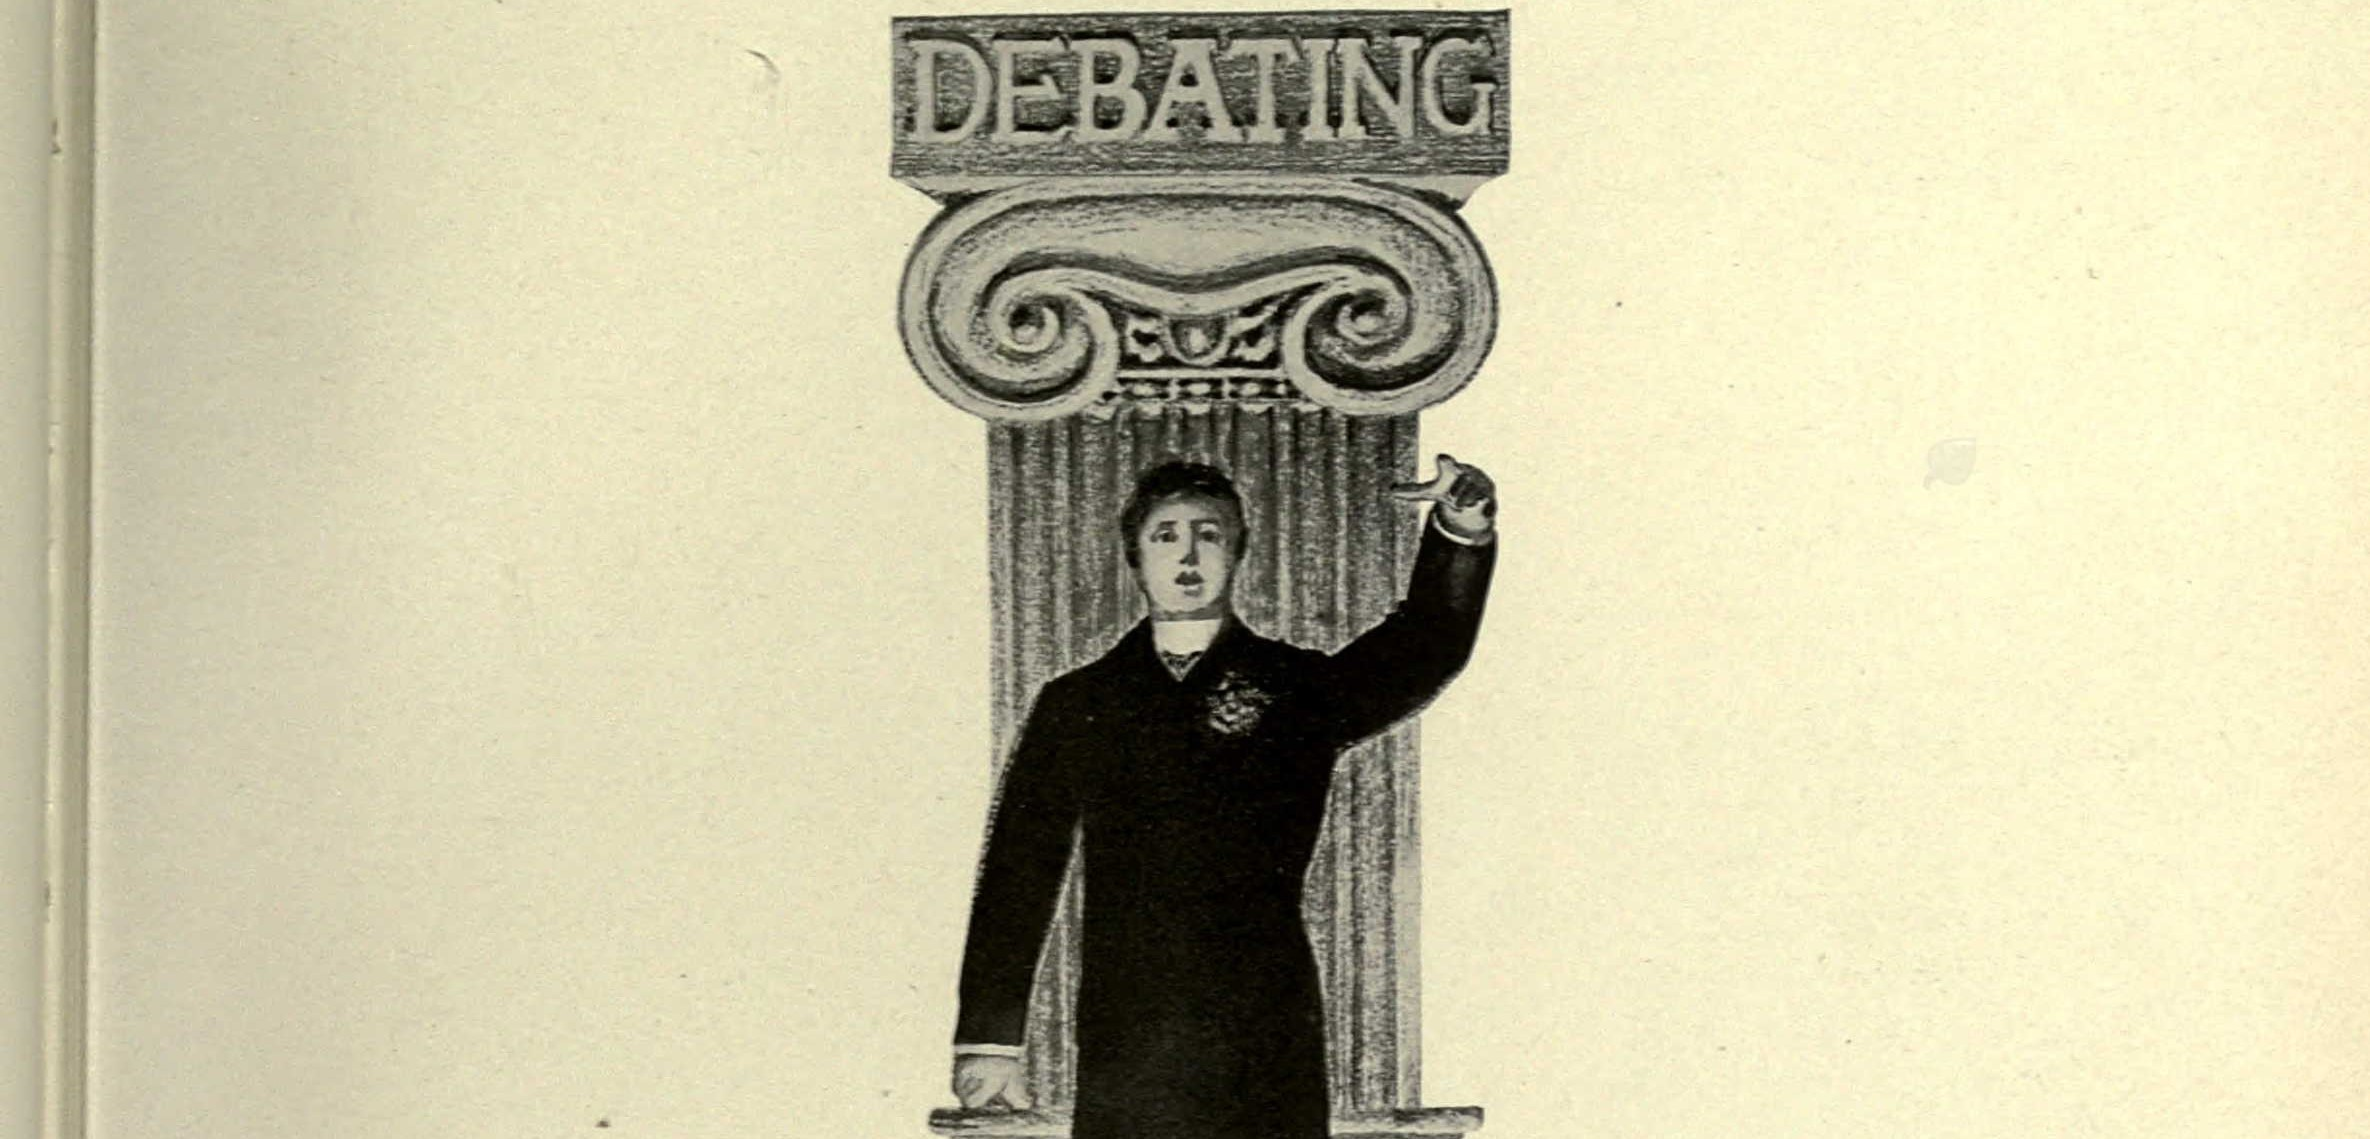 Lithograph from the 1903 Cal yearbook section on debate